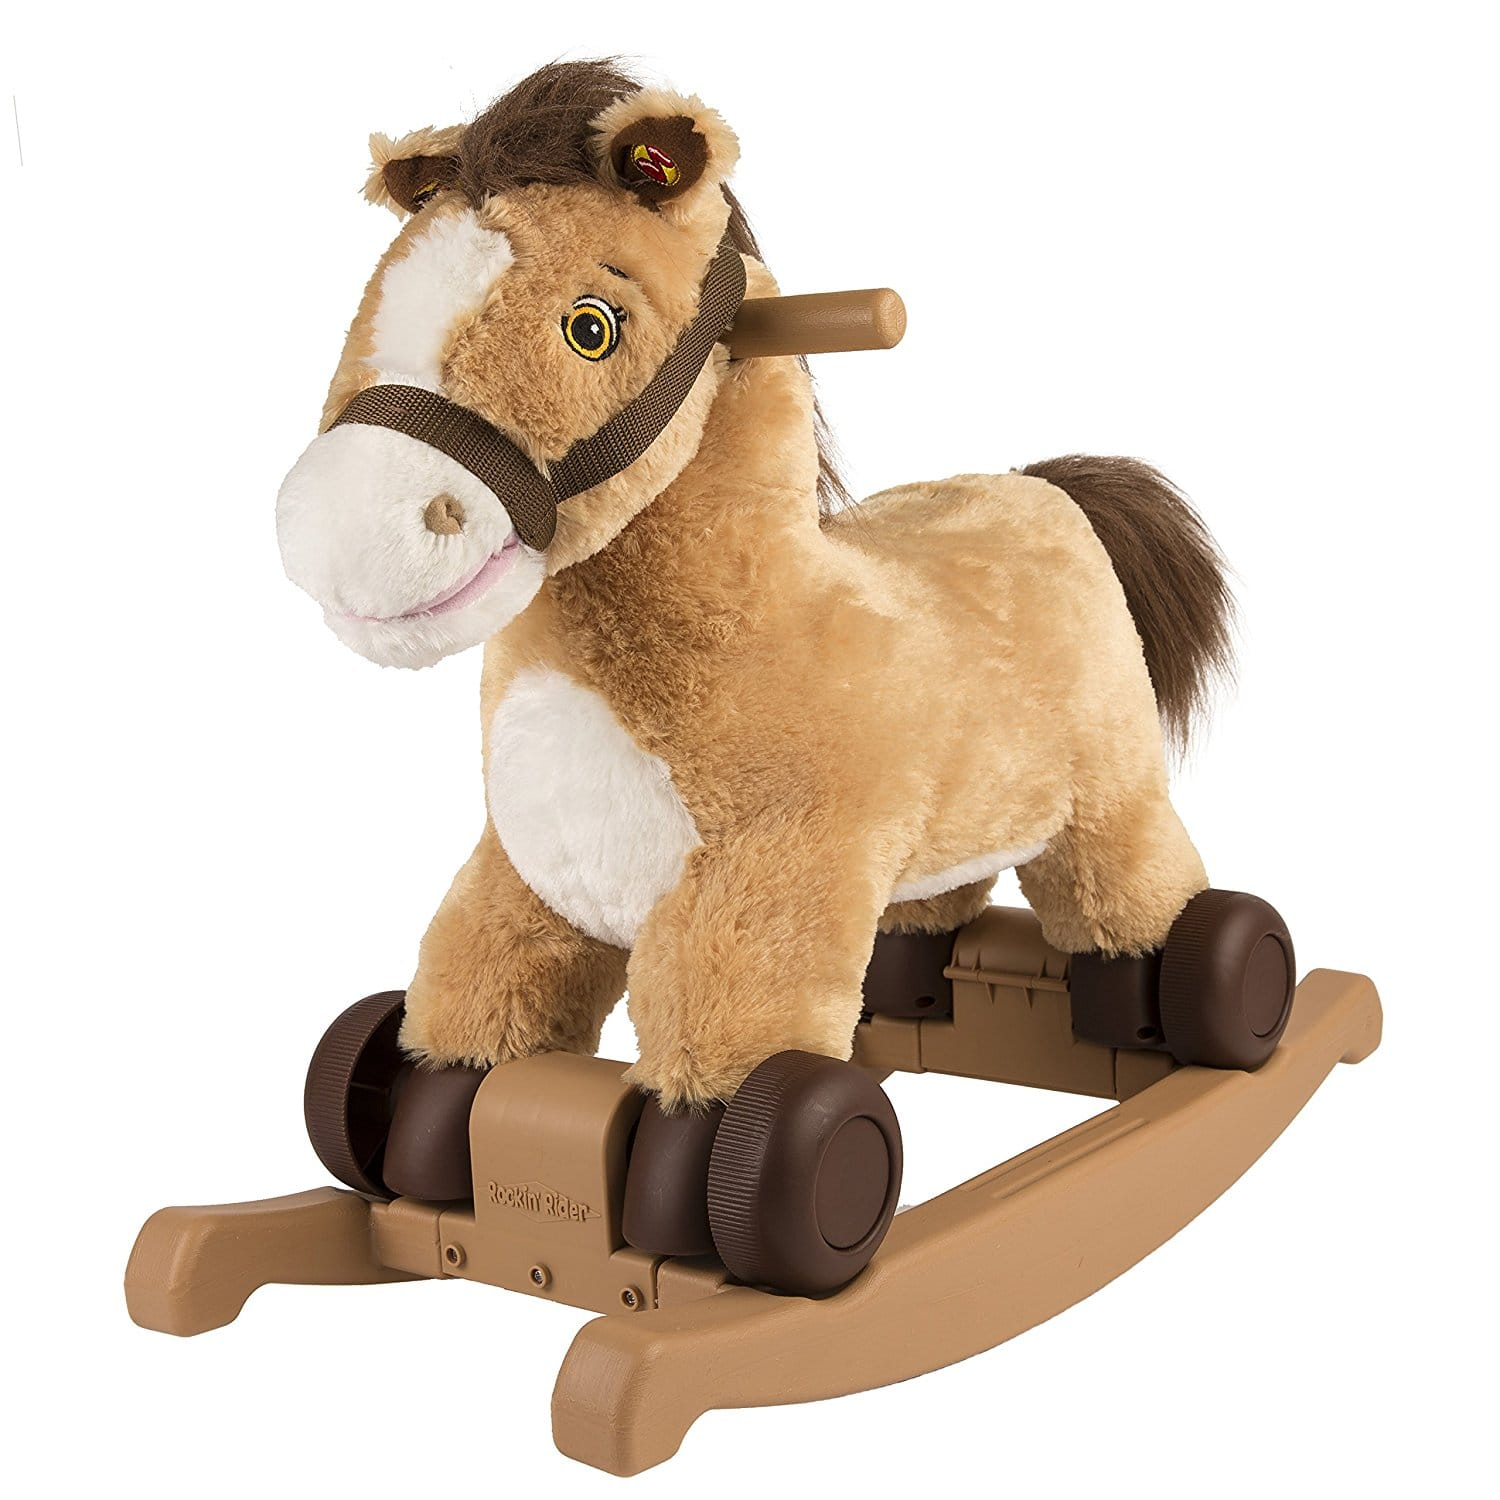 Rockin' Rider Charger 2-in-1 Rocking Pony $9.00 IN-STORE ONLY